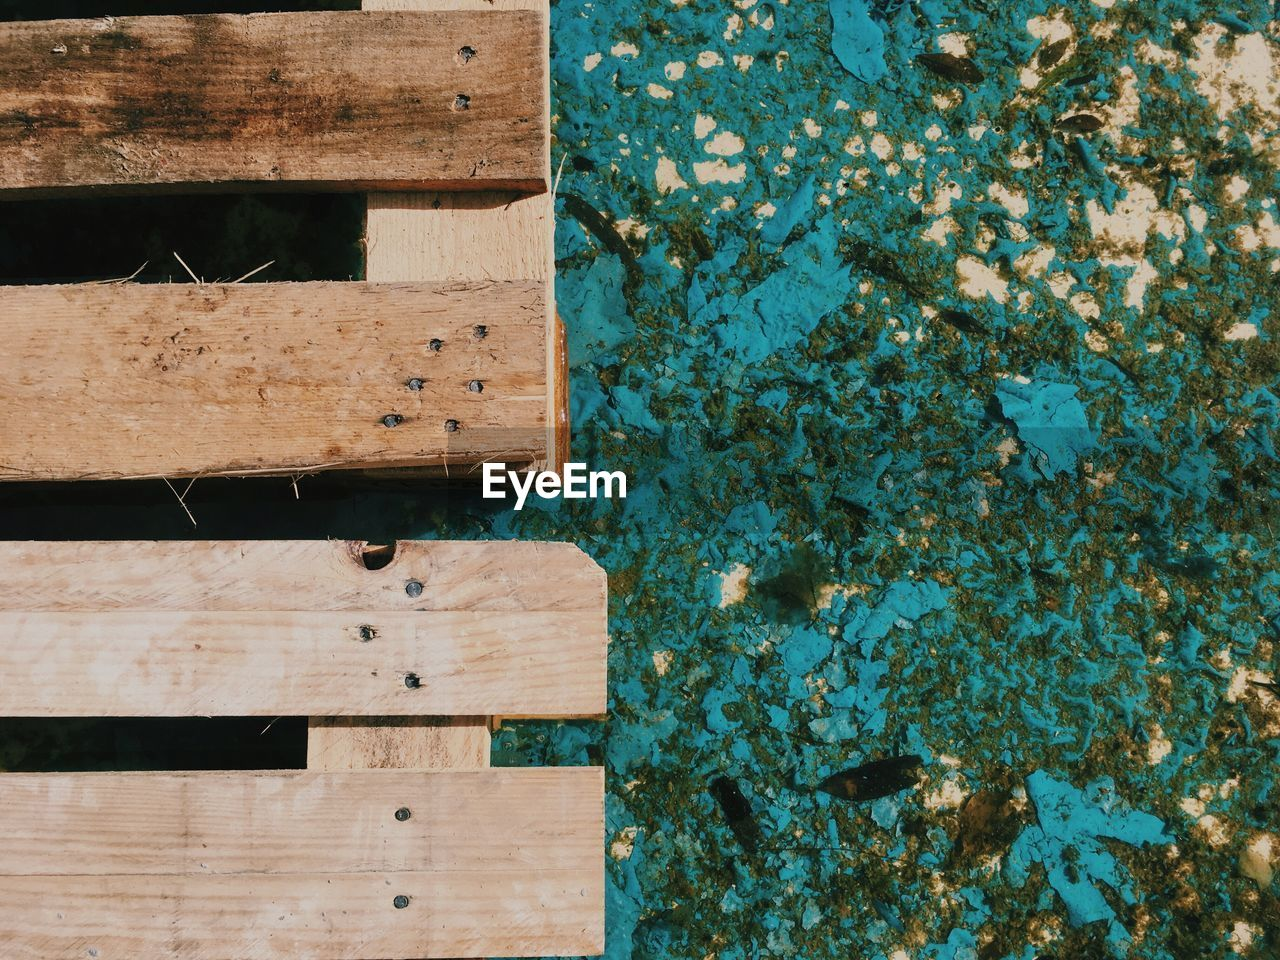 High angle view of wooden plank by pond